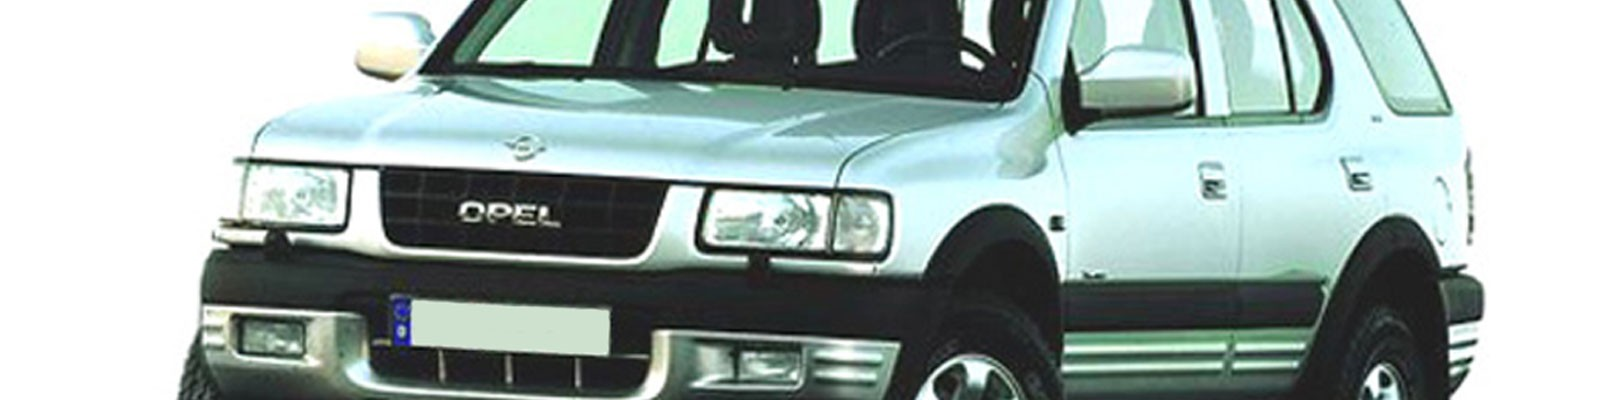 Accessories For Vauxhall Frontera Sport 1990 To 1996